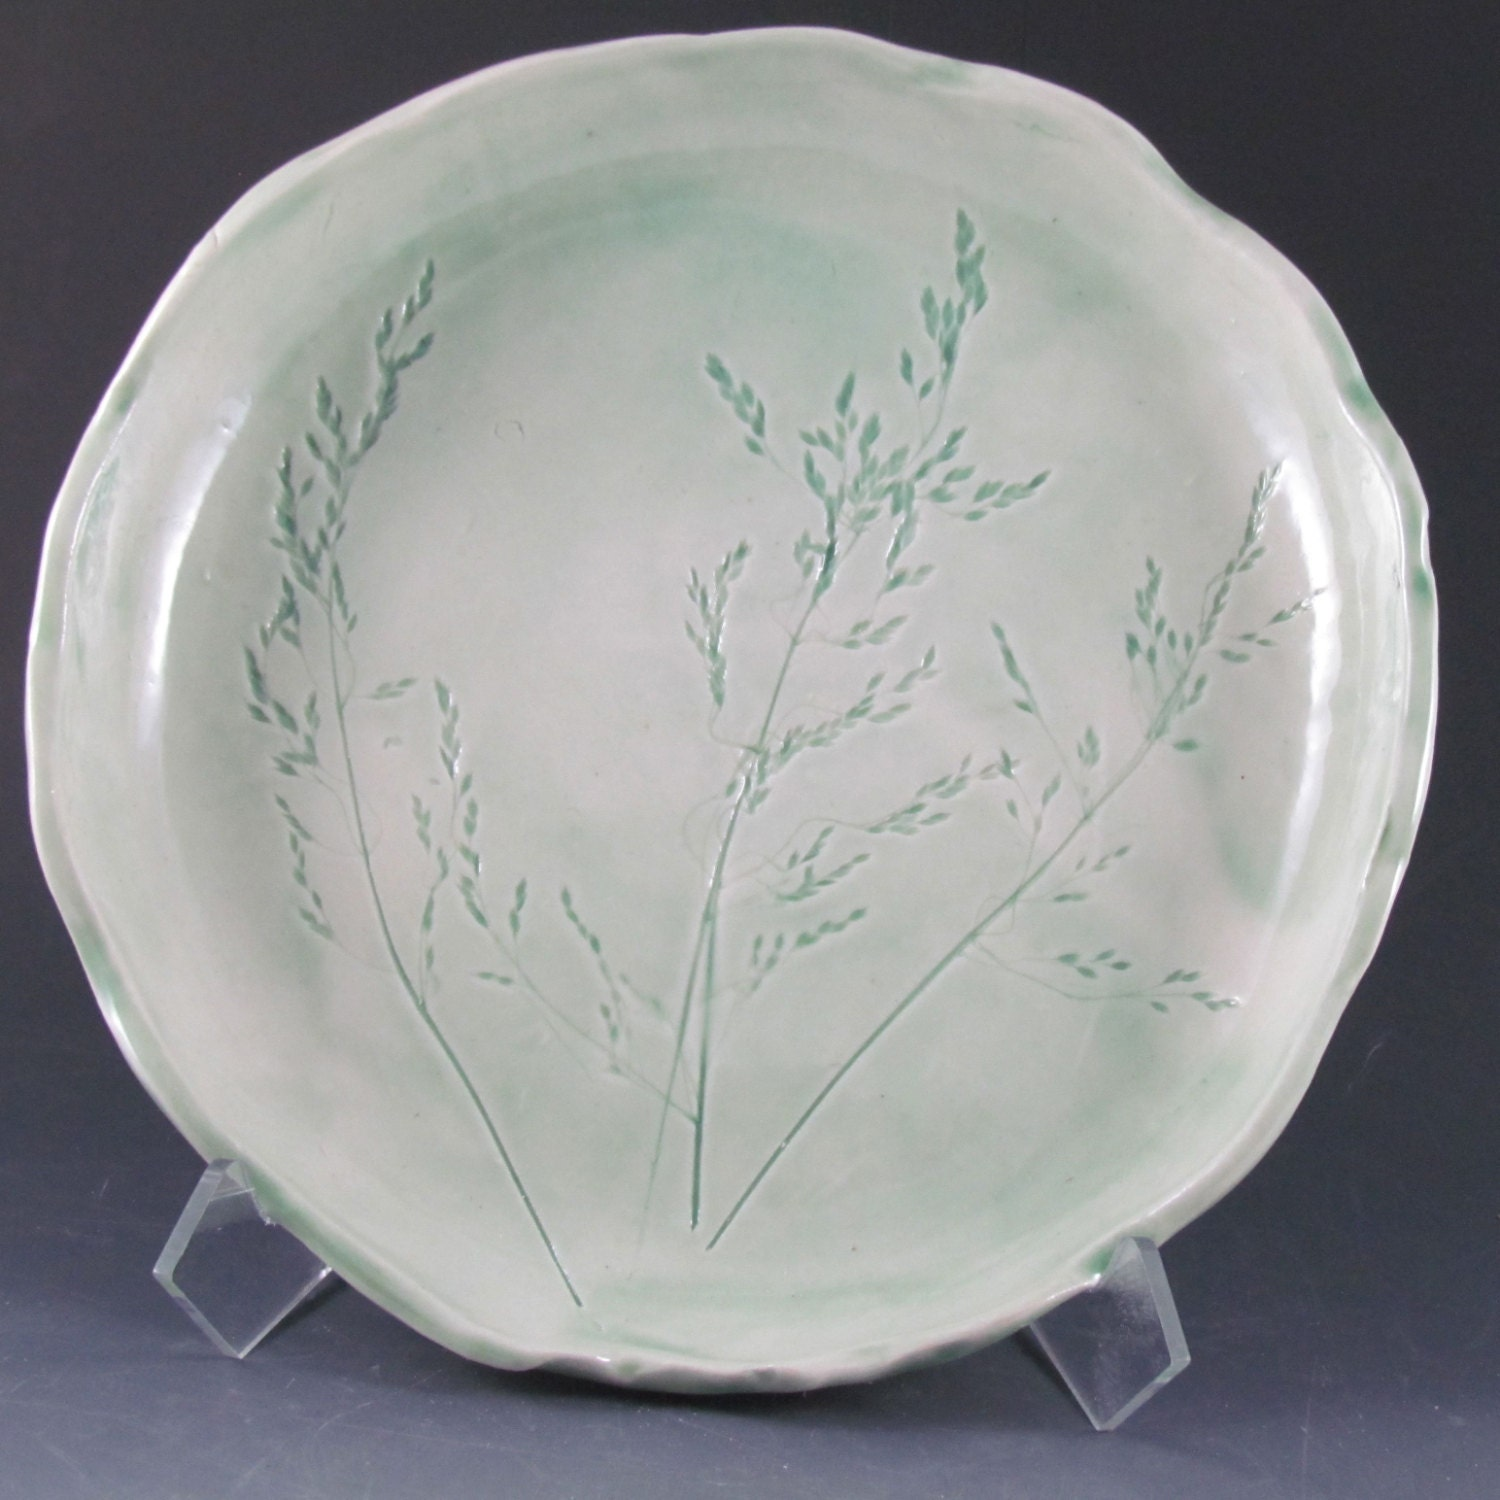 1 x 8 inch porcelain plate with inlaid grasses